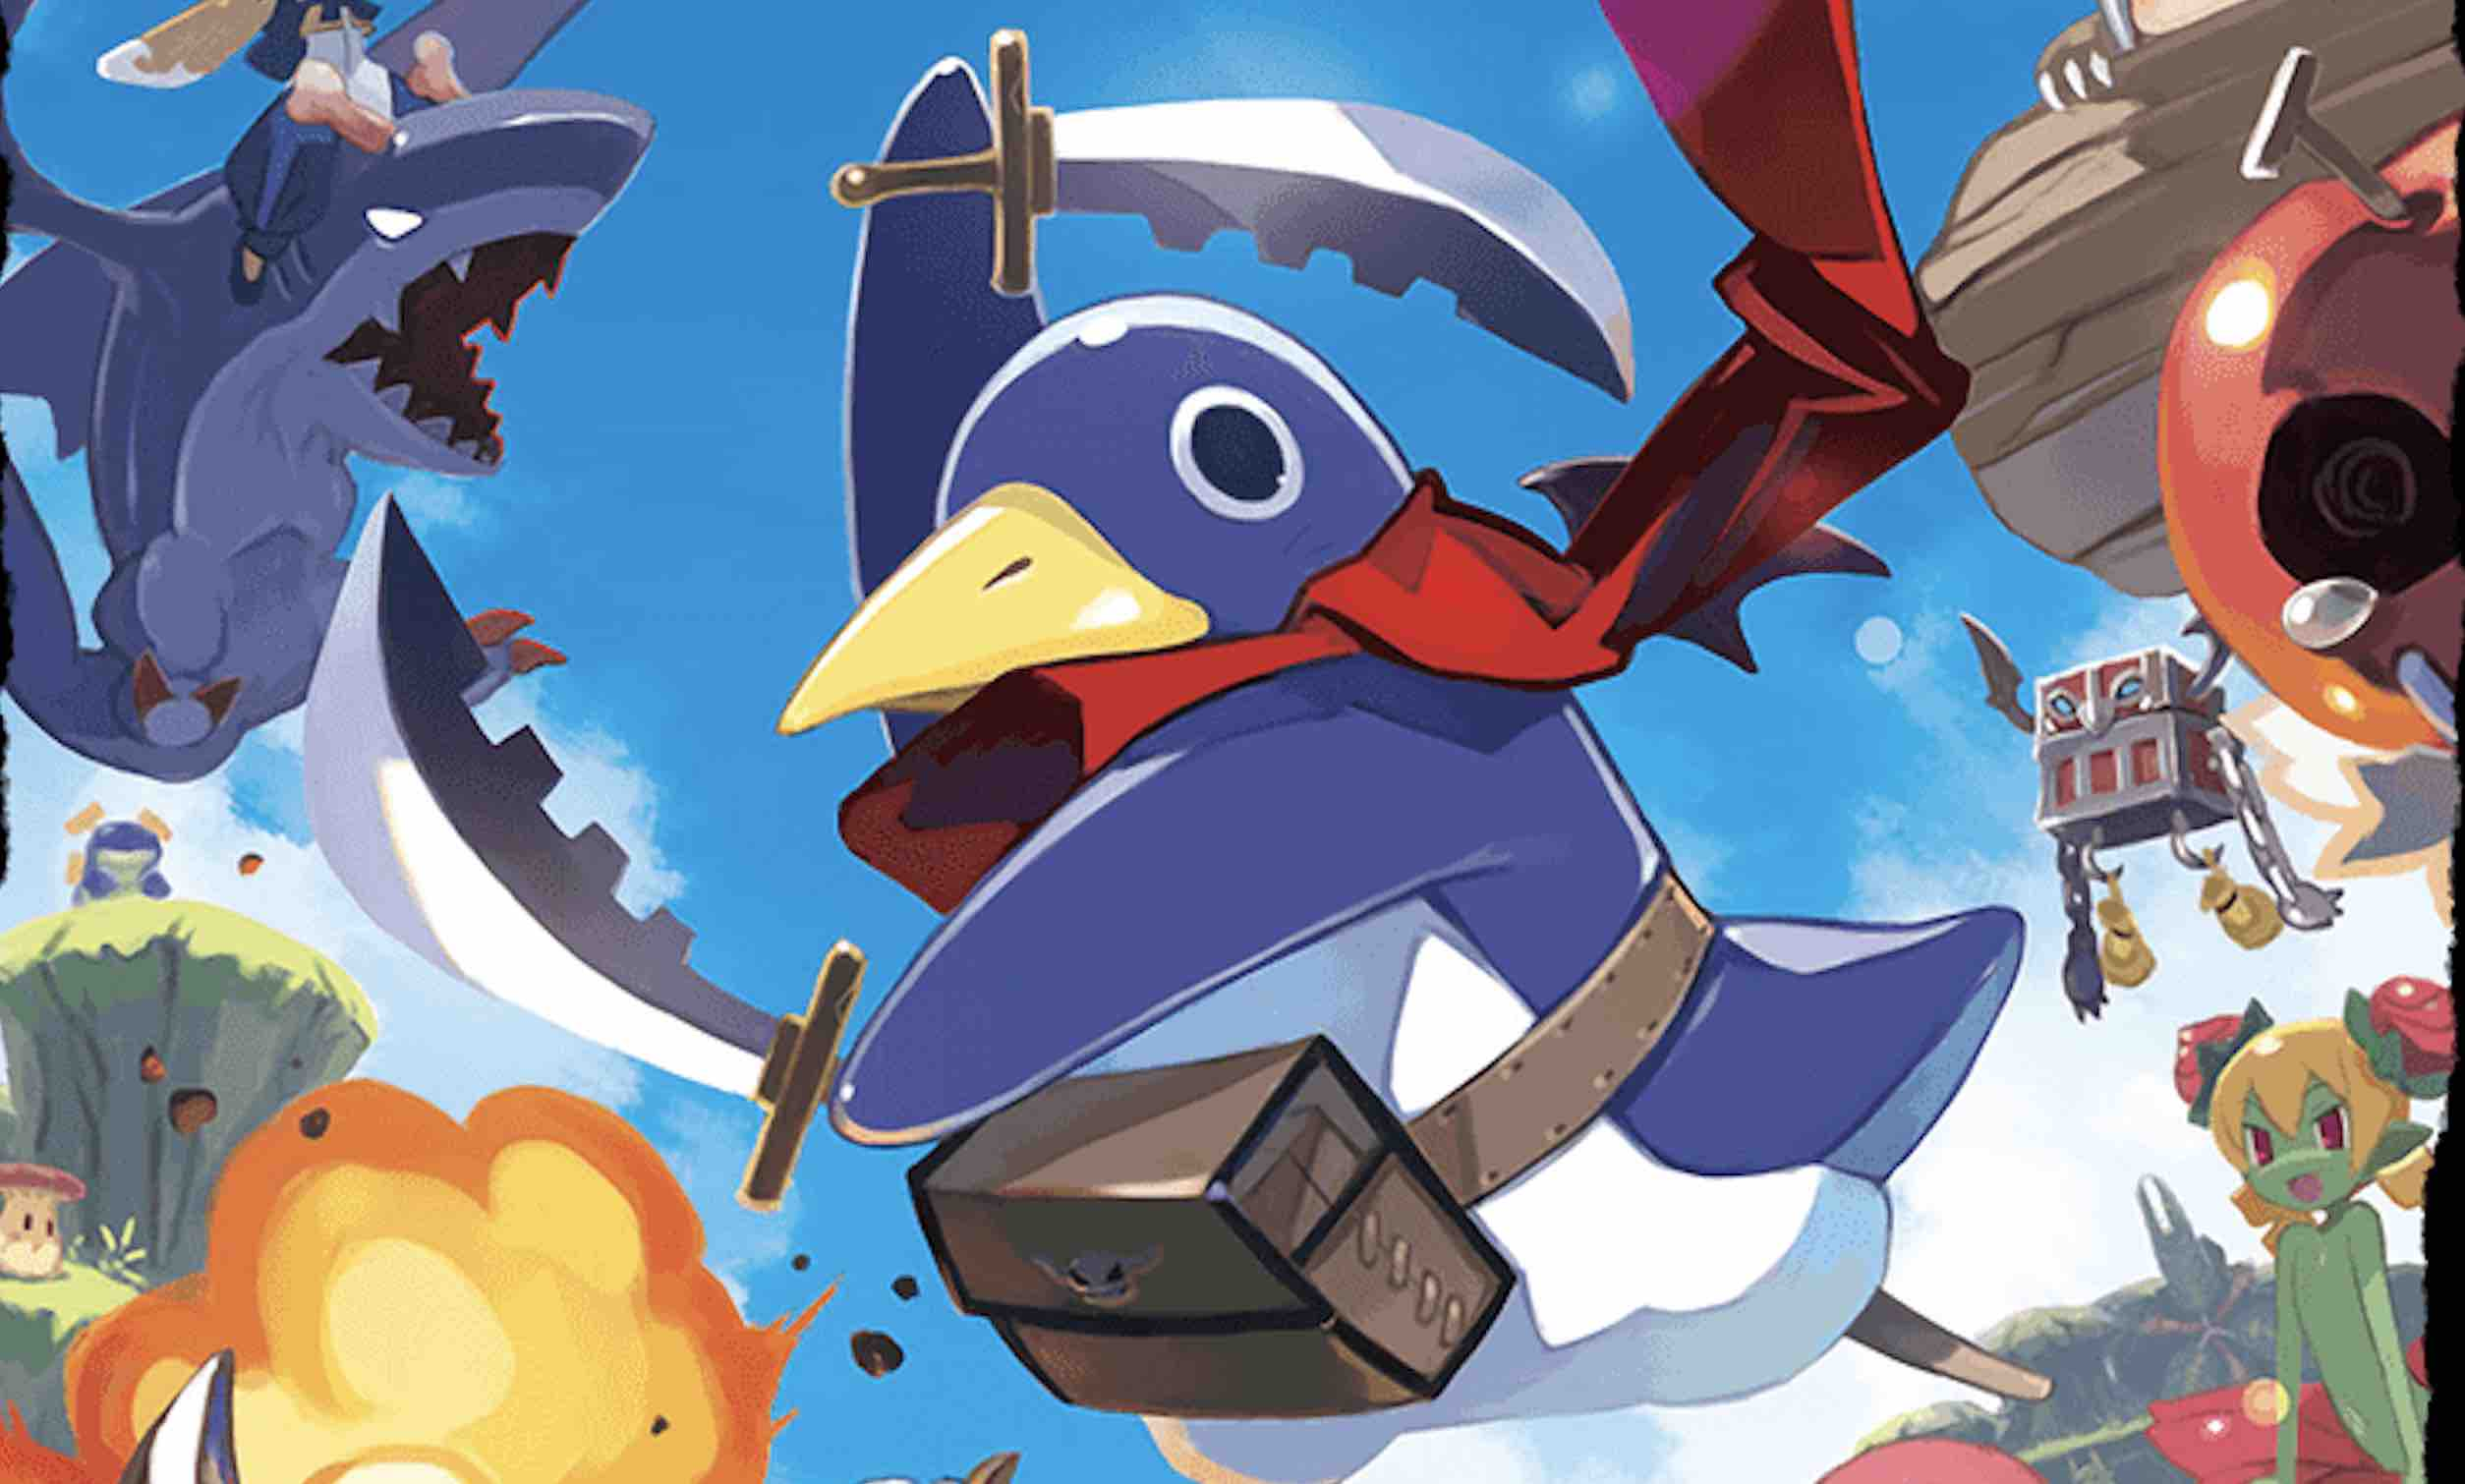 Prinny exploded reloaded review